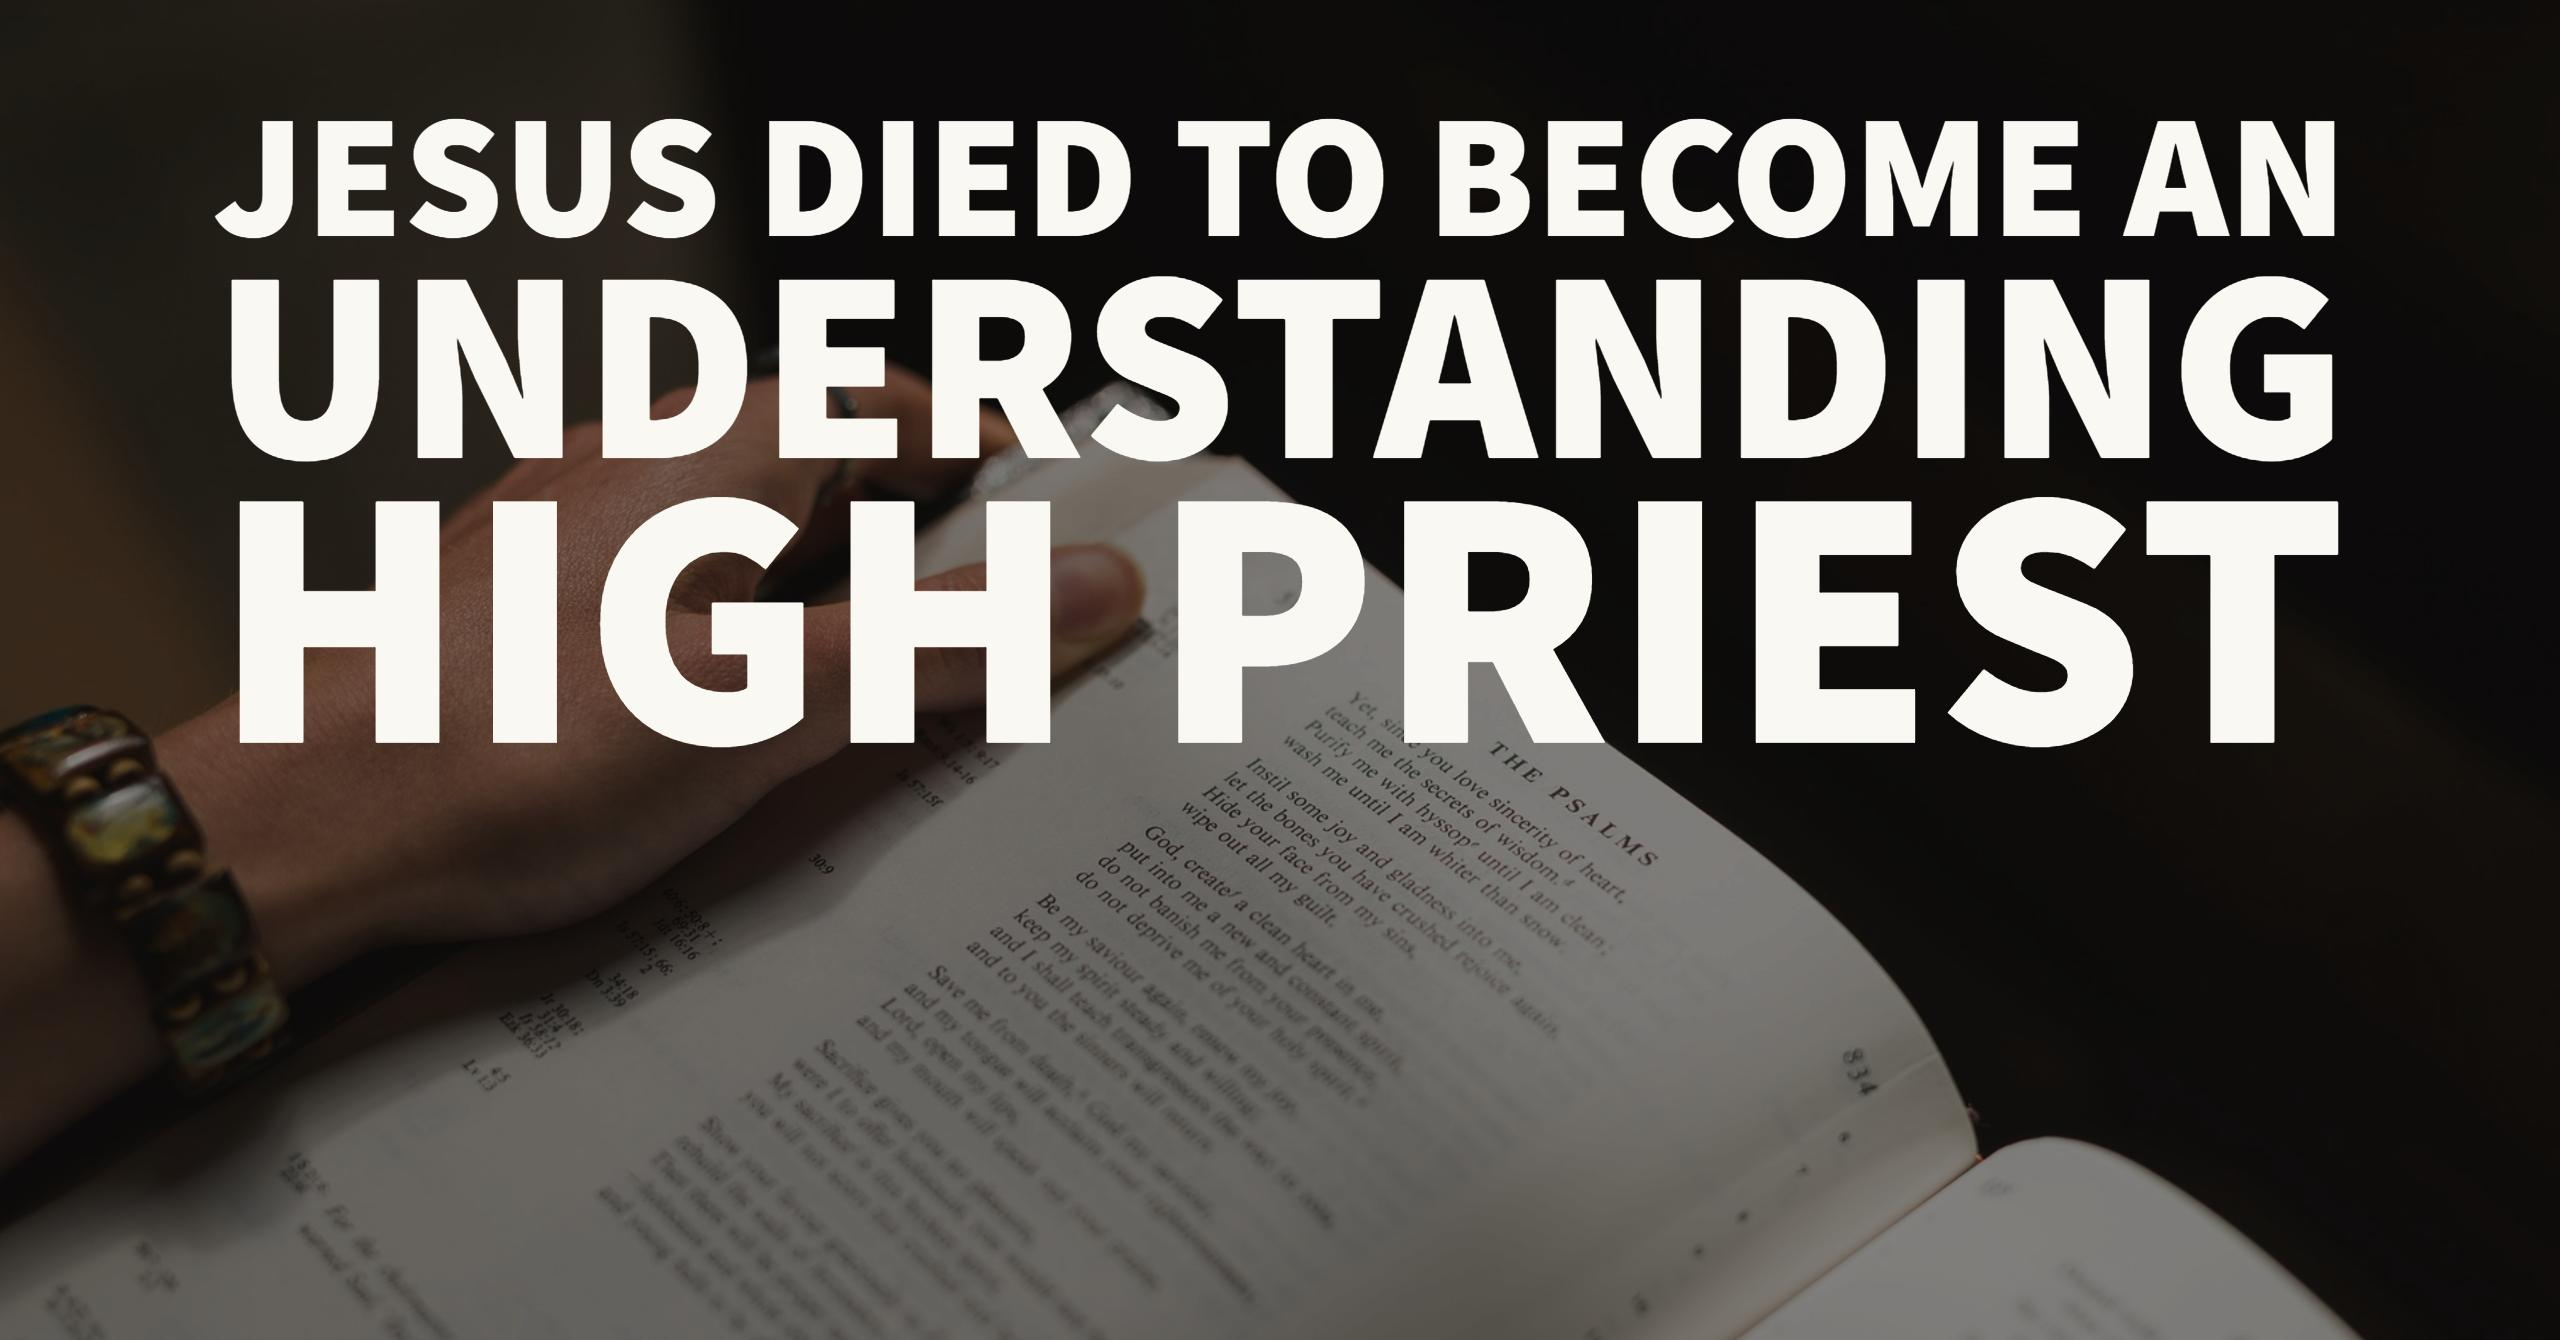 Jesus died to become an understanding High Priest